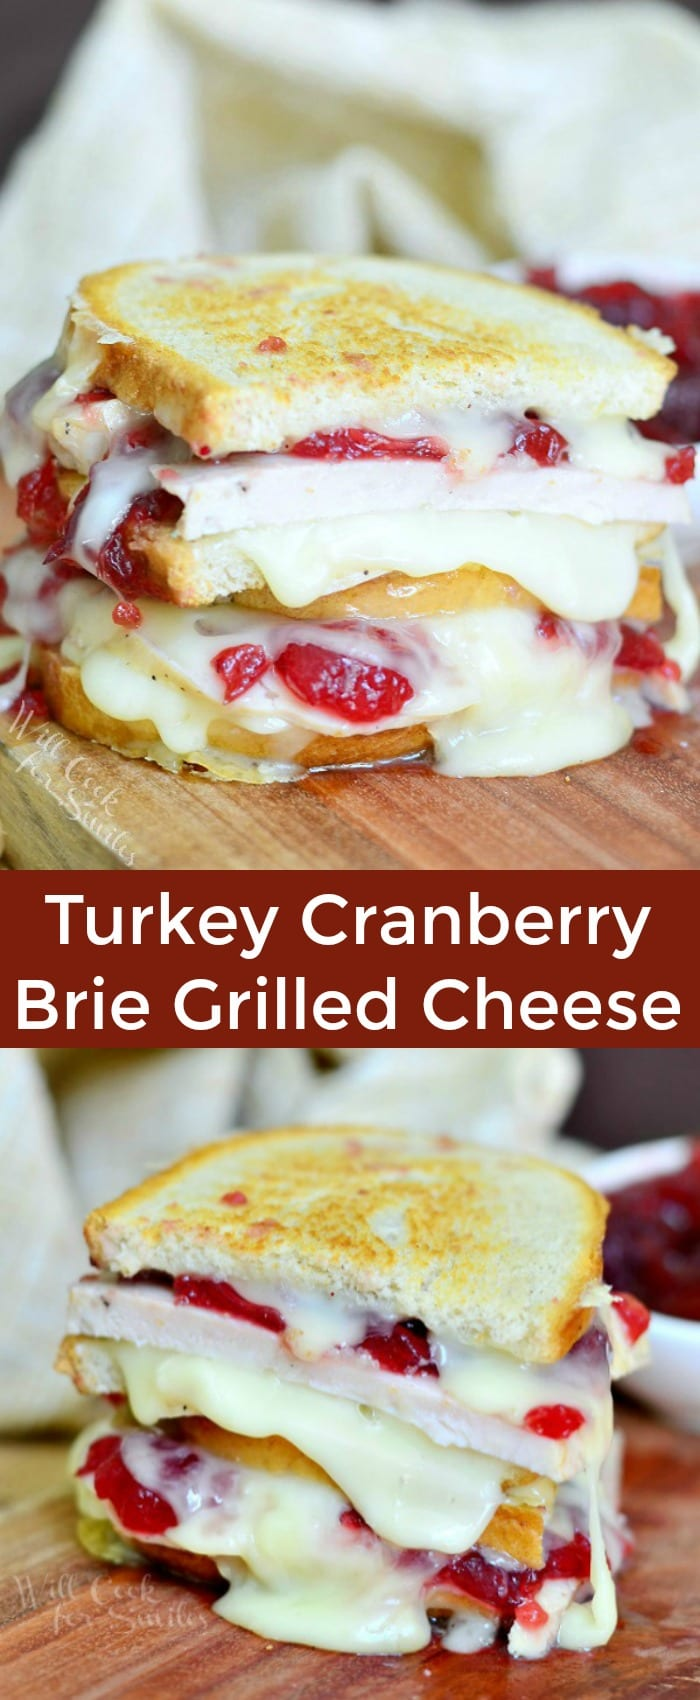 Turkey Cranberry Brie Grilled Cheese. Amazing recipe to use up those Thanksgiving leftovers after the holiday dinner. Gooey grilled cheese recipe made with turkey breast, smooth melted brie cheese and cranberry sauce. #turkey #grilledcheese #sandwich #leftovers #brie